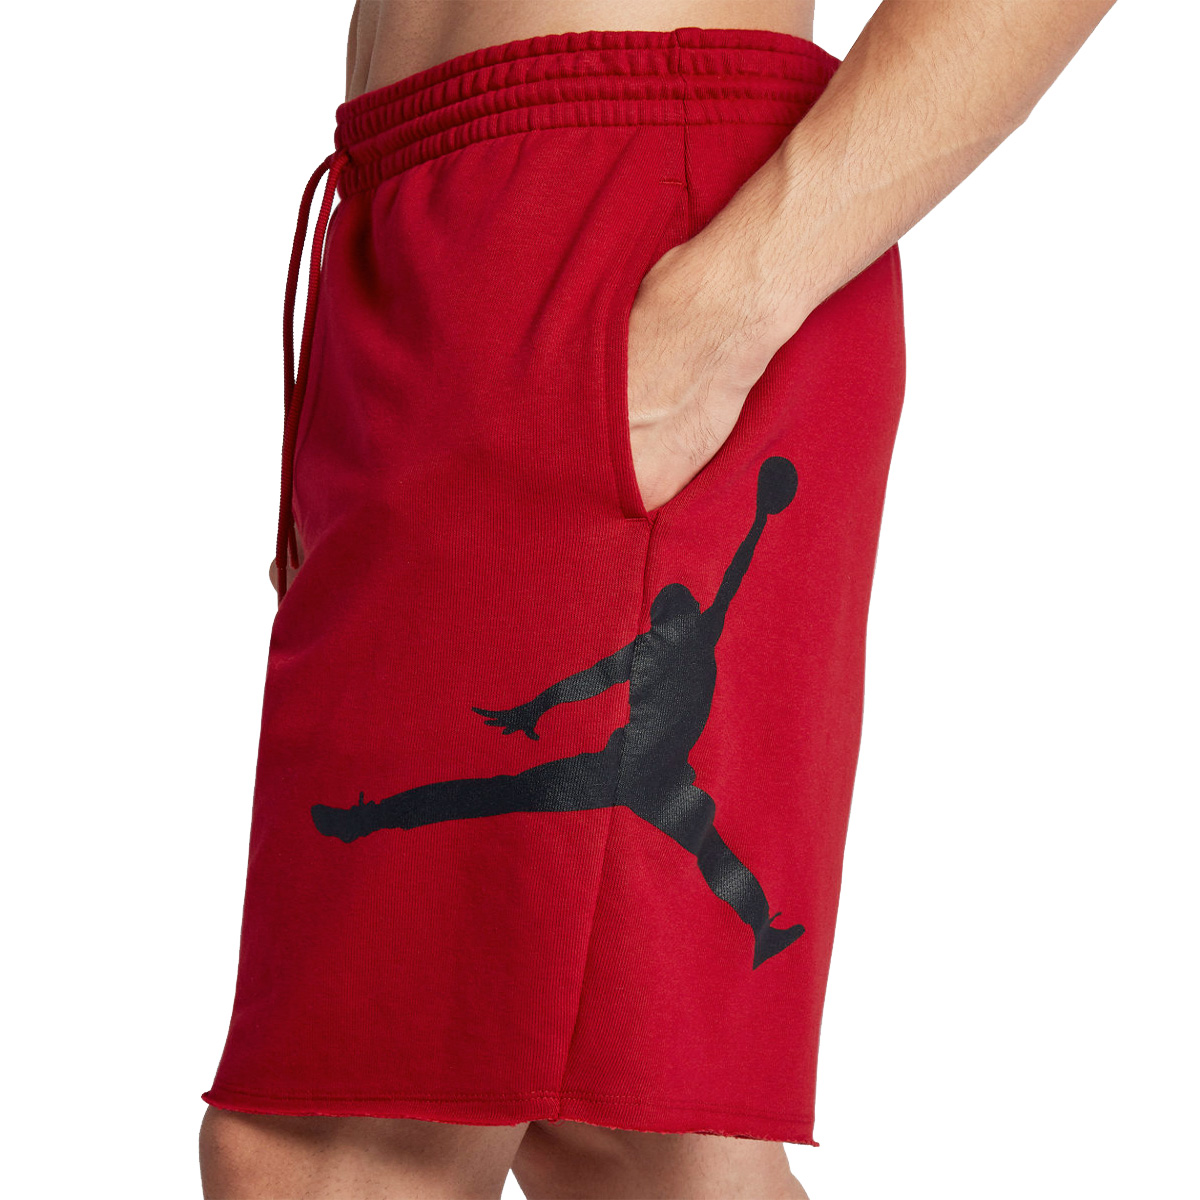 2b0643ddbeab NIKE JORDAN SPORTSWEAR JUMPMAN AIR FLEECE SHORTS Nike Jordan sportswear jump  man air fleece shorts RED